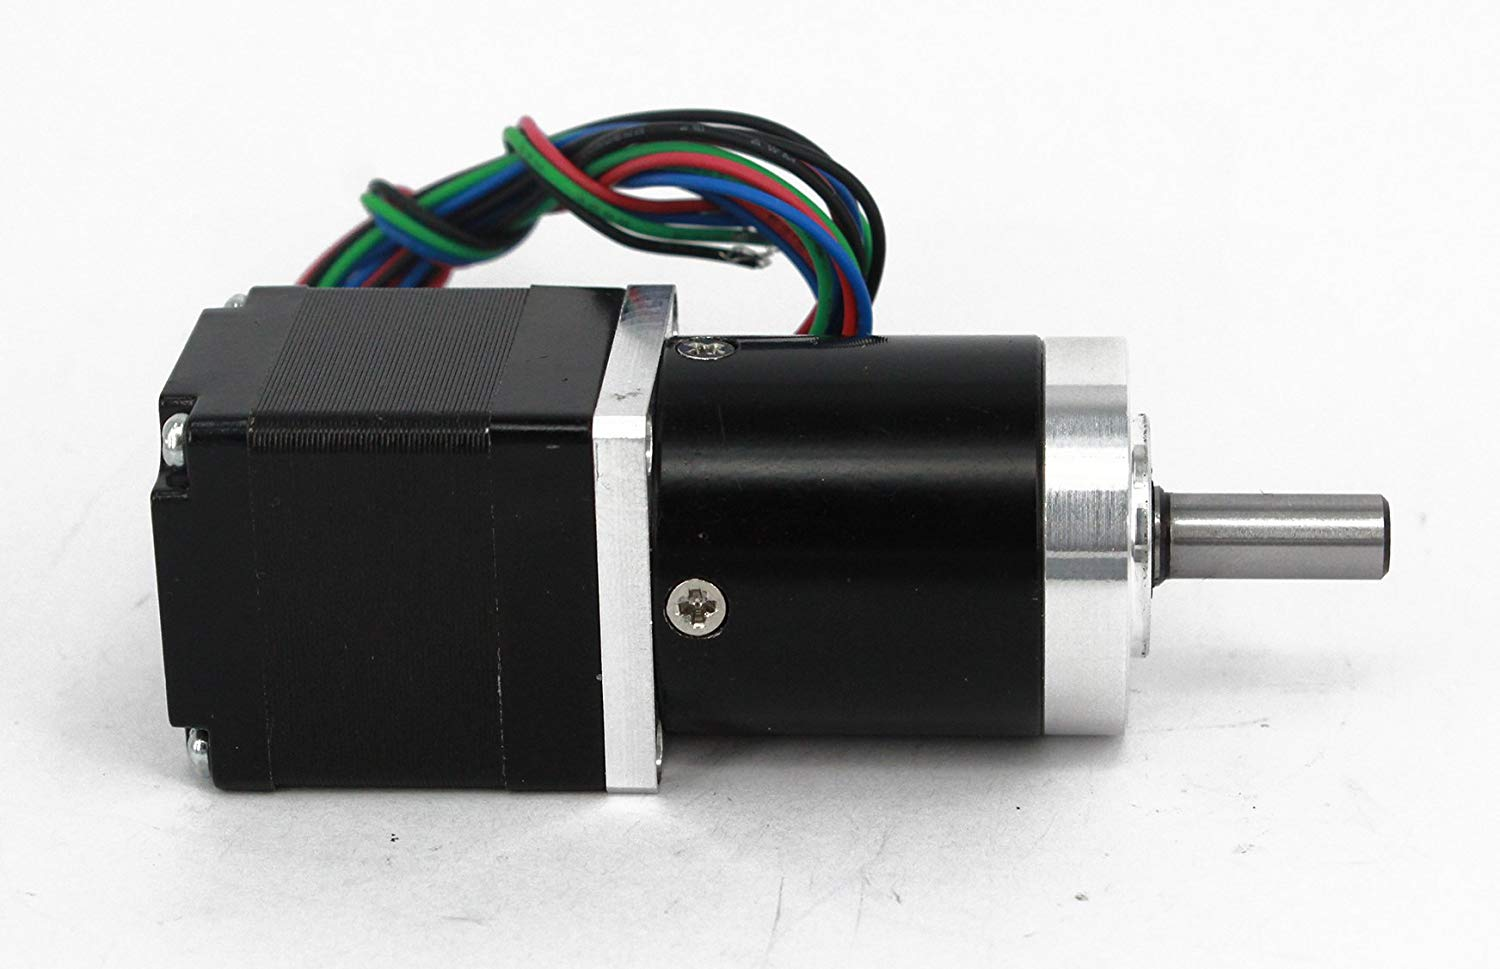 Gear Stepper Motor Nema 11 L=30mm with Planetary Gearbox Ratio 9~20:1 (Ratio 15:1)